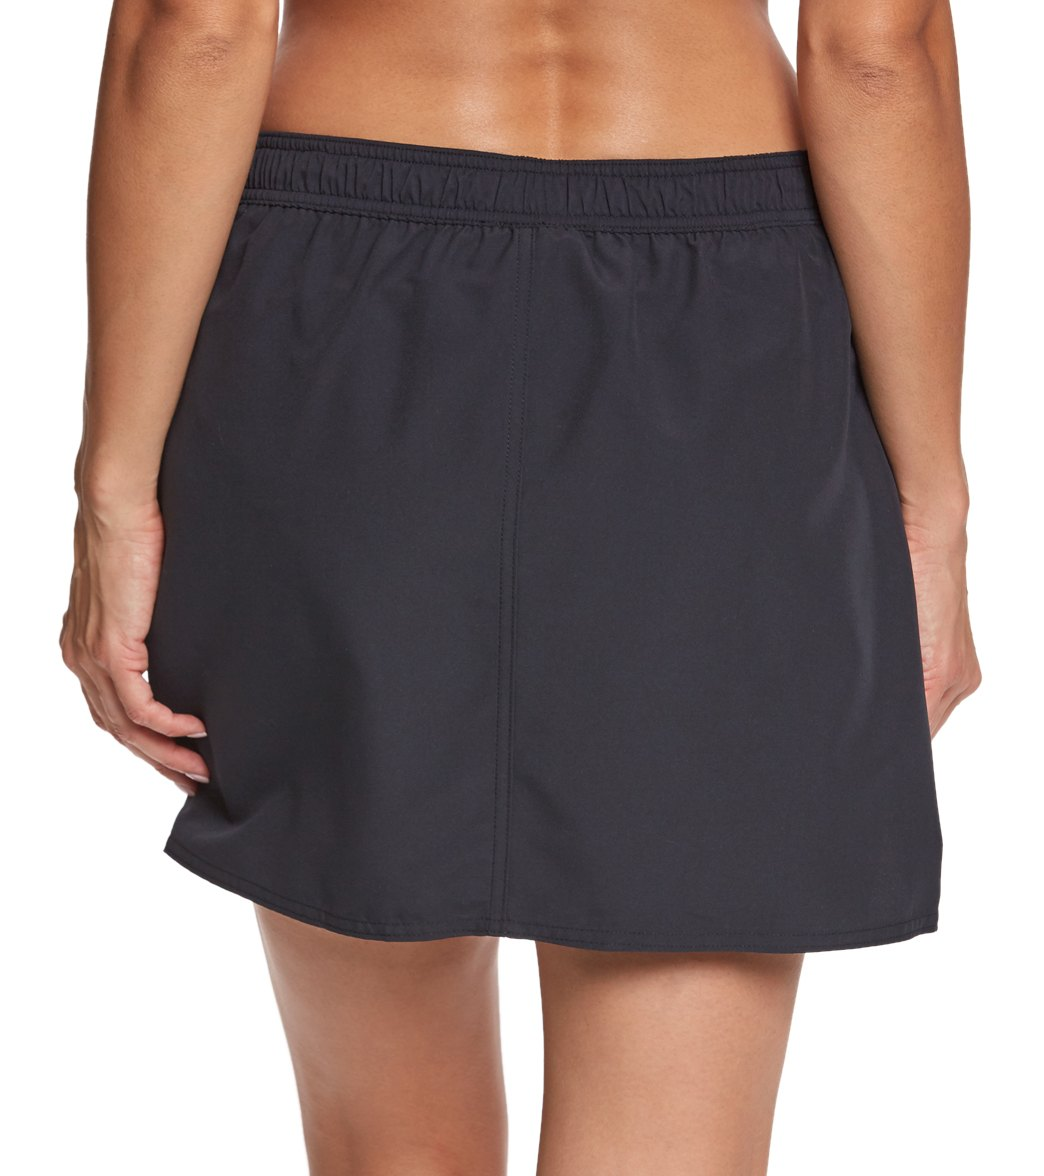 4c9b6638202 Maxine Women's Solid Woven Boardskirt at SwimOutlet.com